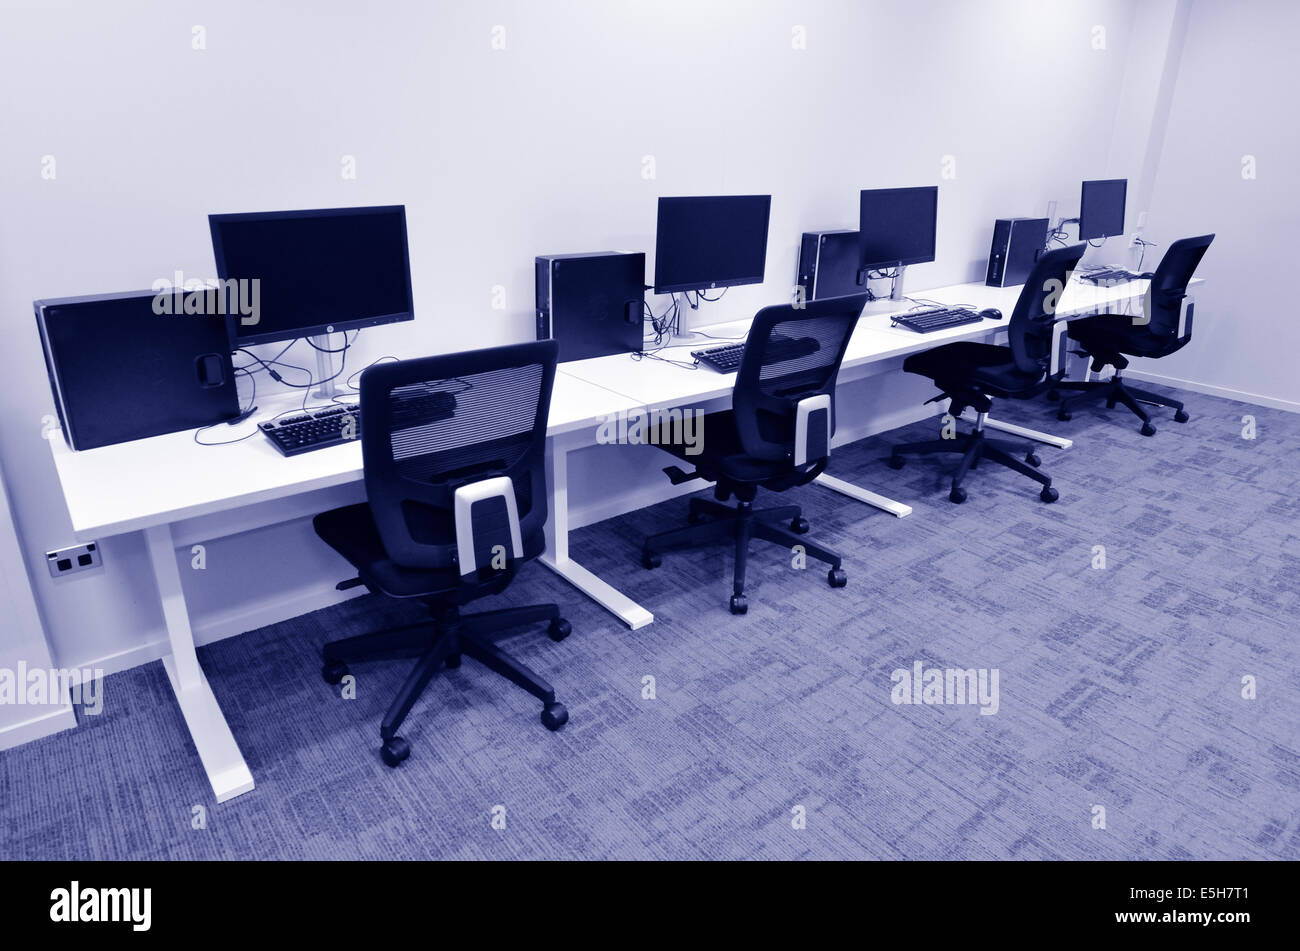 Lab Furniture Concept Inspiration Computer Lab Room With Empty Workstation Office Desk And Chairs . Design Decoration